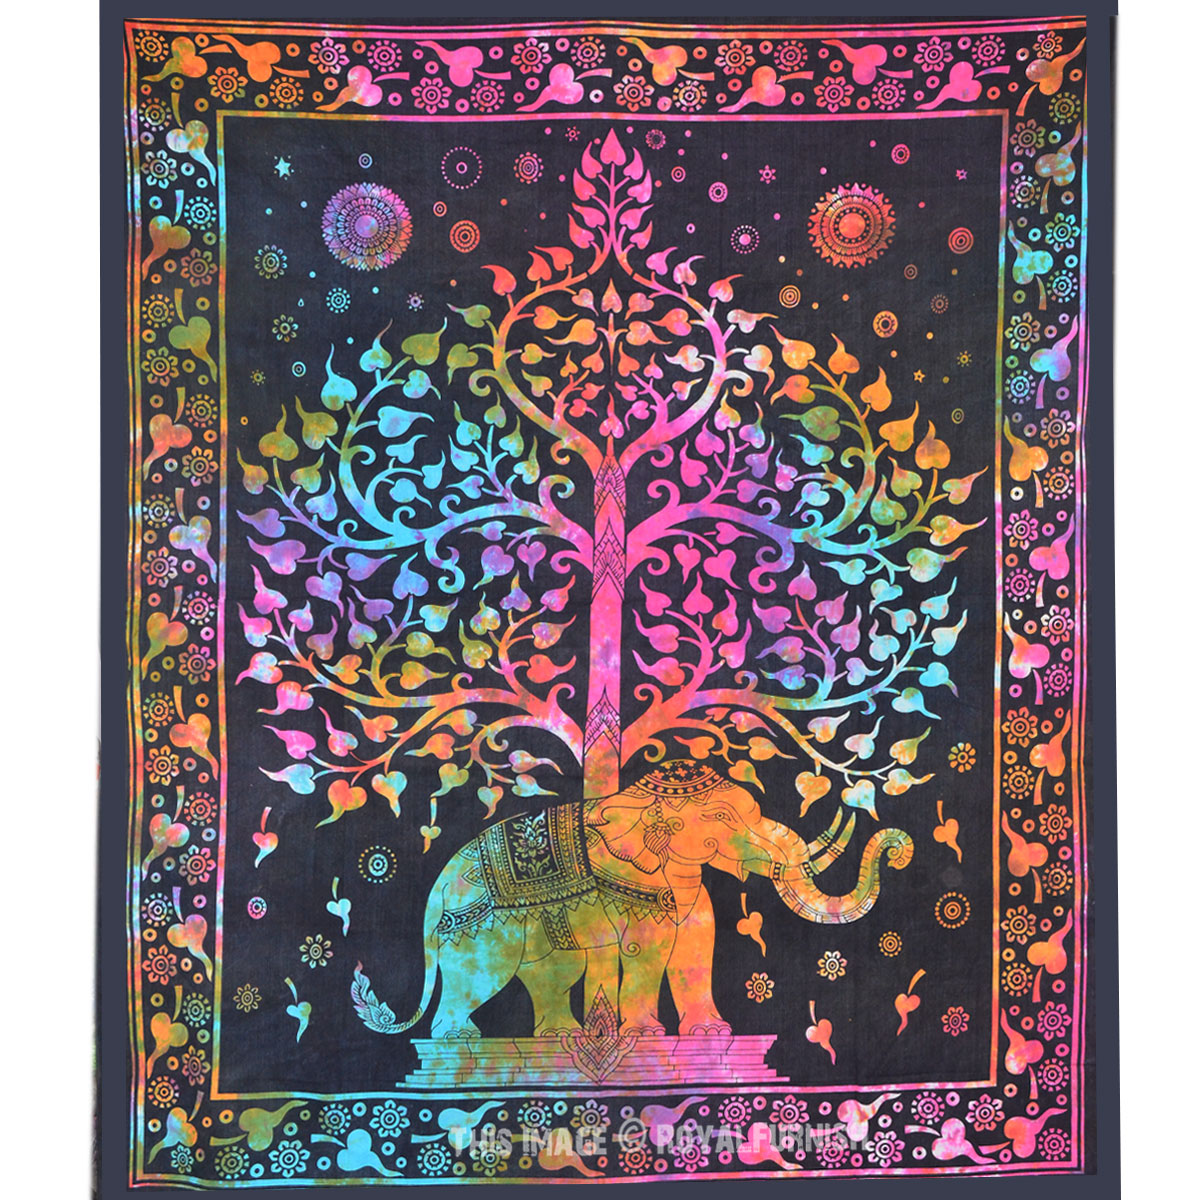 Tie dye colorful elephant tree tapestry wall hanging bedspread bedding royalfurnish com